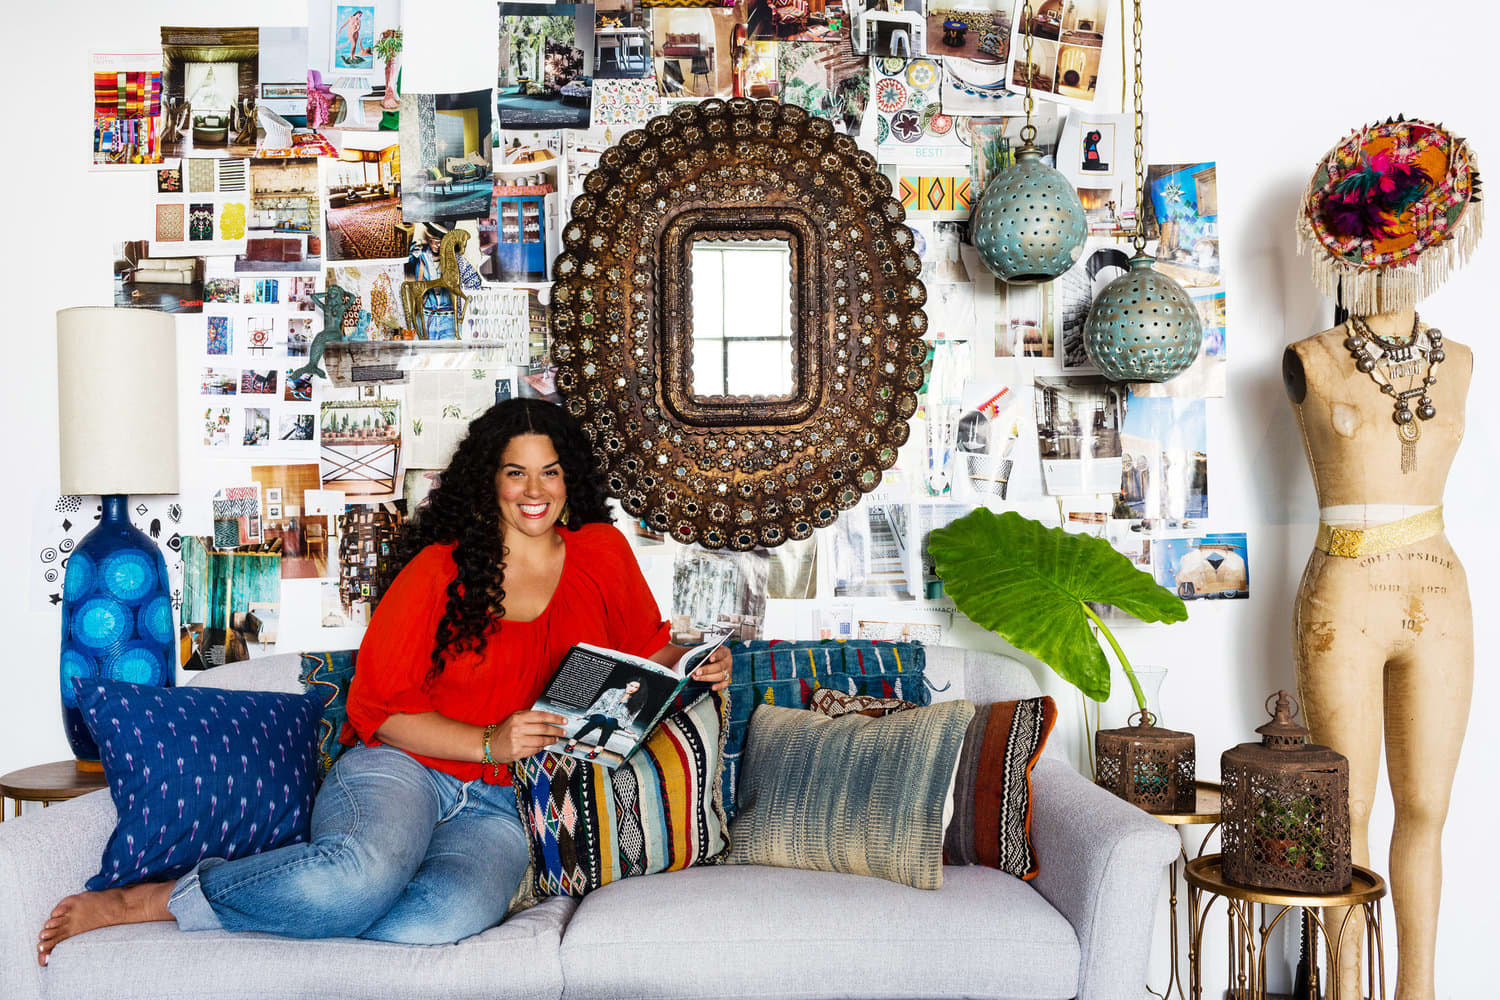 The Home Design Blogs You Should Be Reading for Endless Inspiration